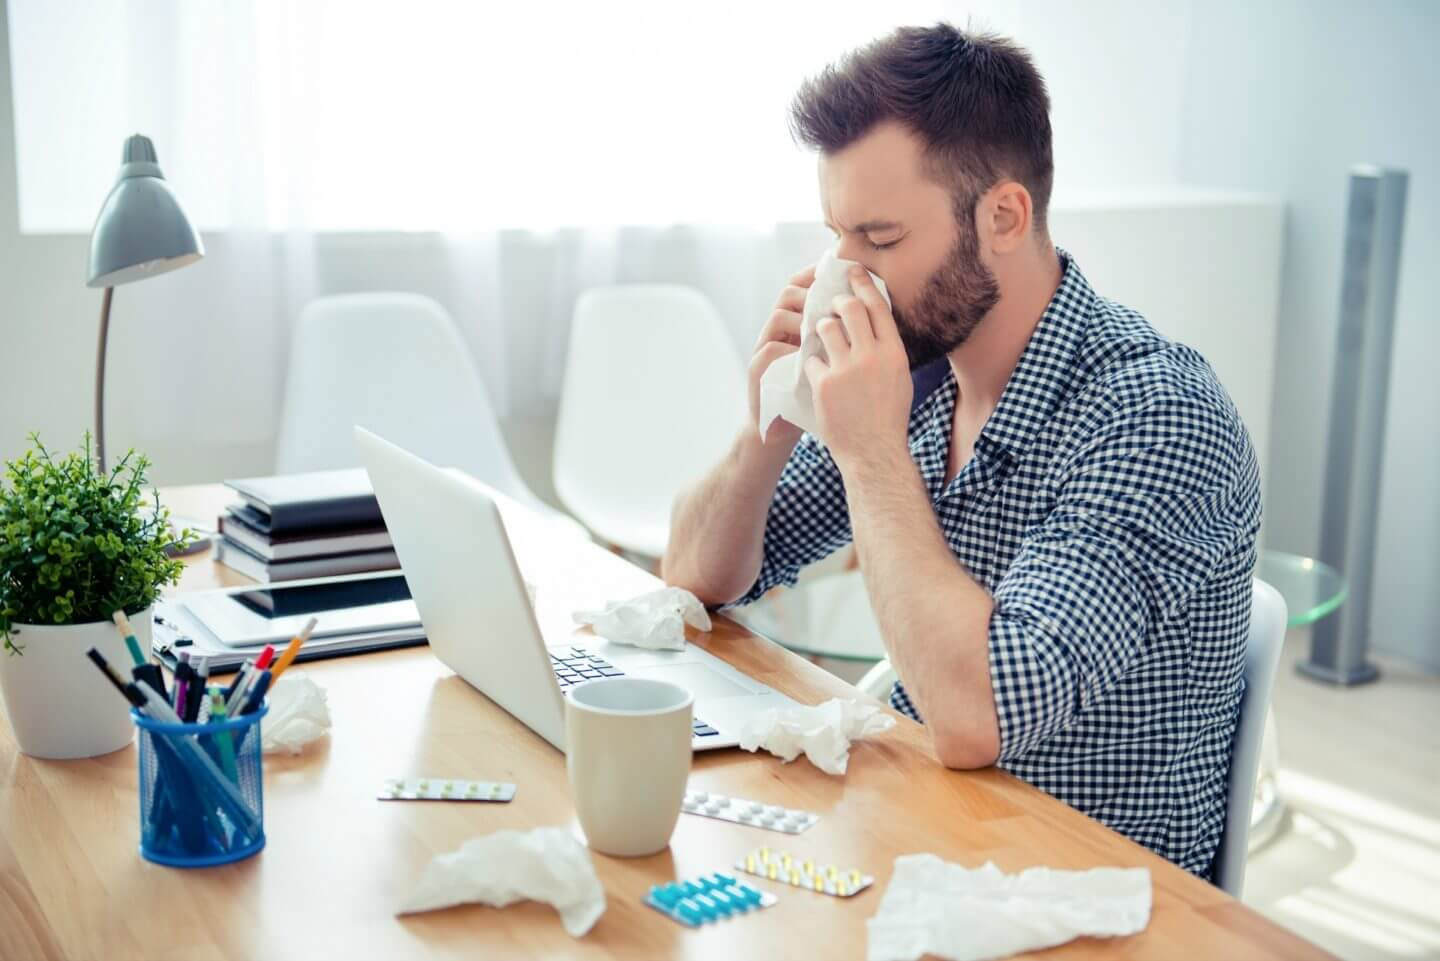 If you do have to sneeze at work, cover your mouth